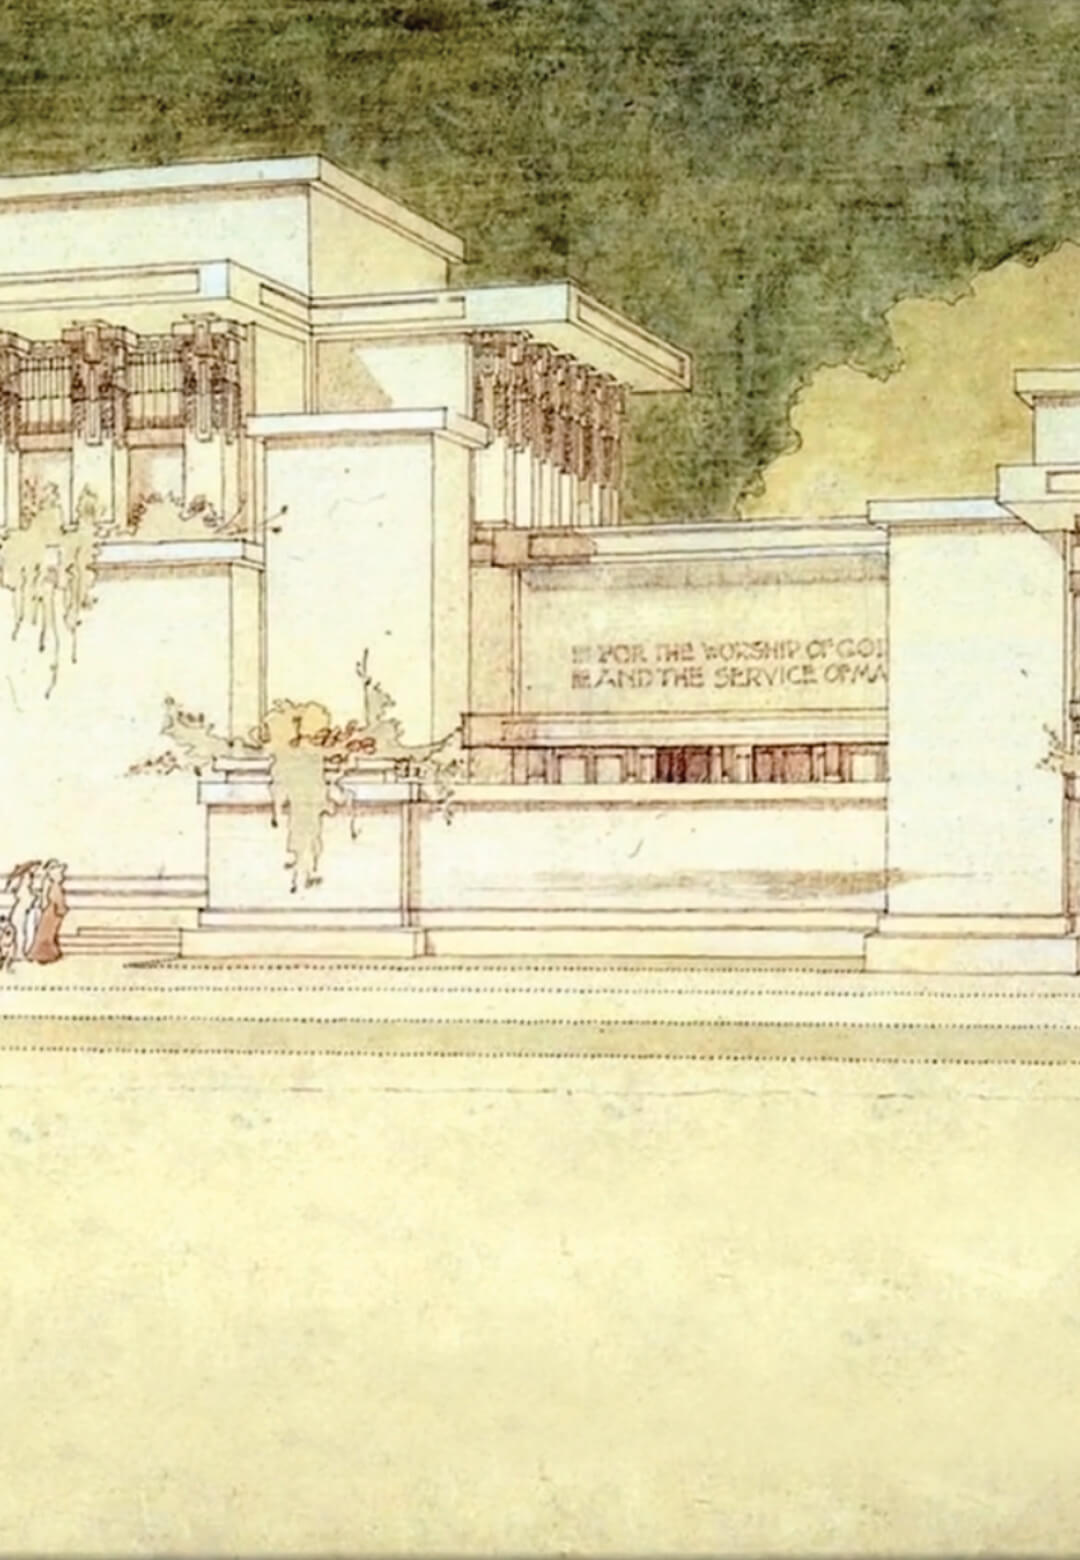 Documentary film 'Unity Temple: Frank Lloyd Wright's Modern Masterpiece' by filmmaker Lauren Levine | Unity Temple Restoration Frank Lloyd Wright | Lauren Levine | STIRworld